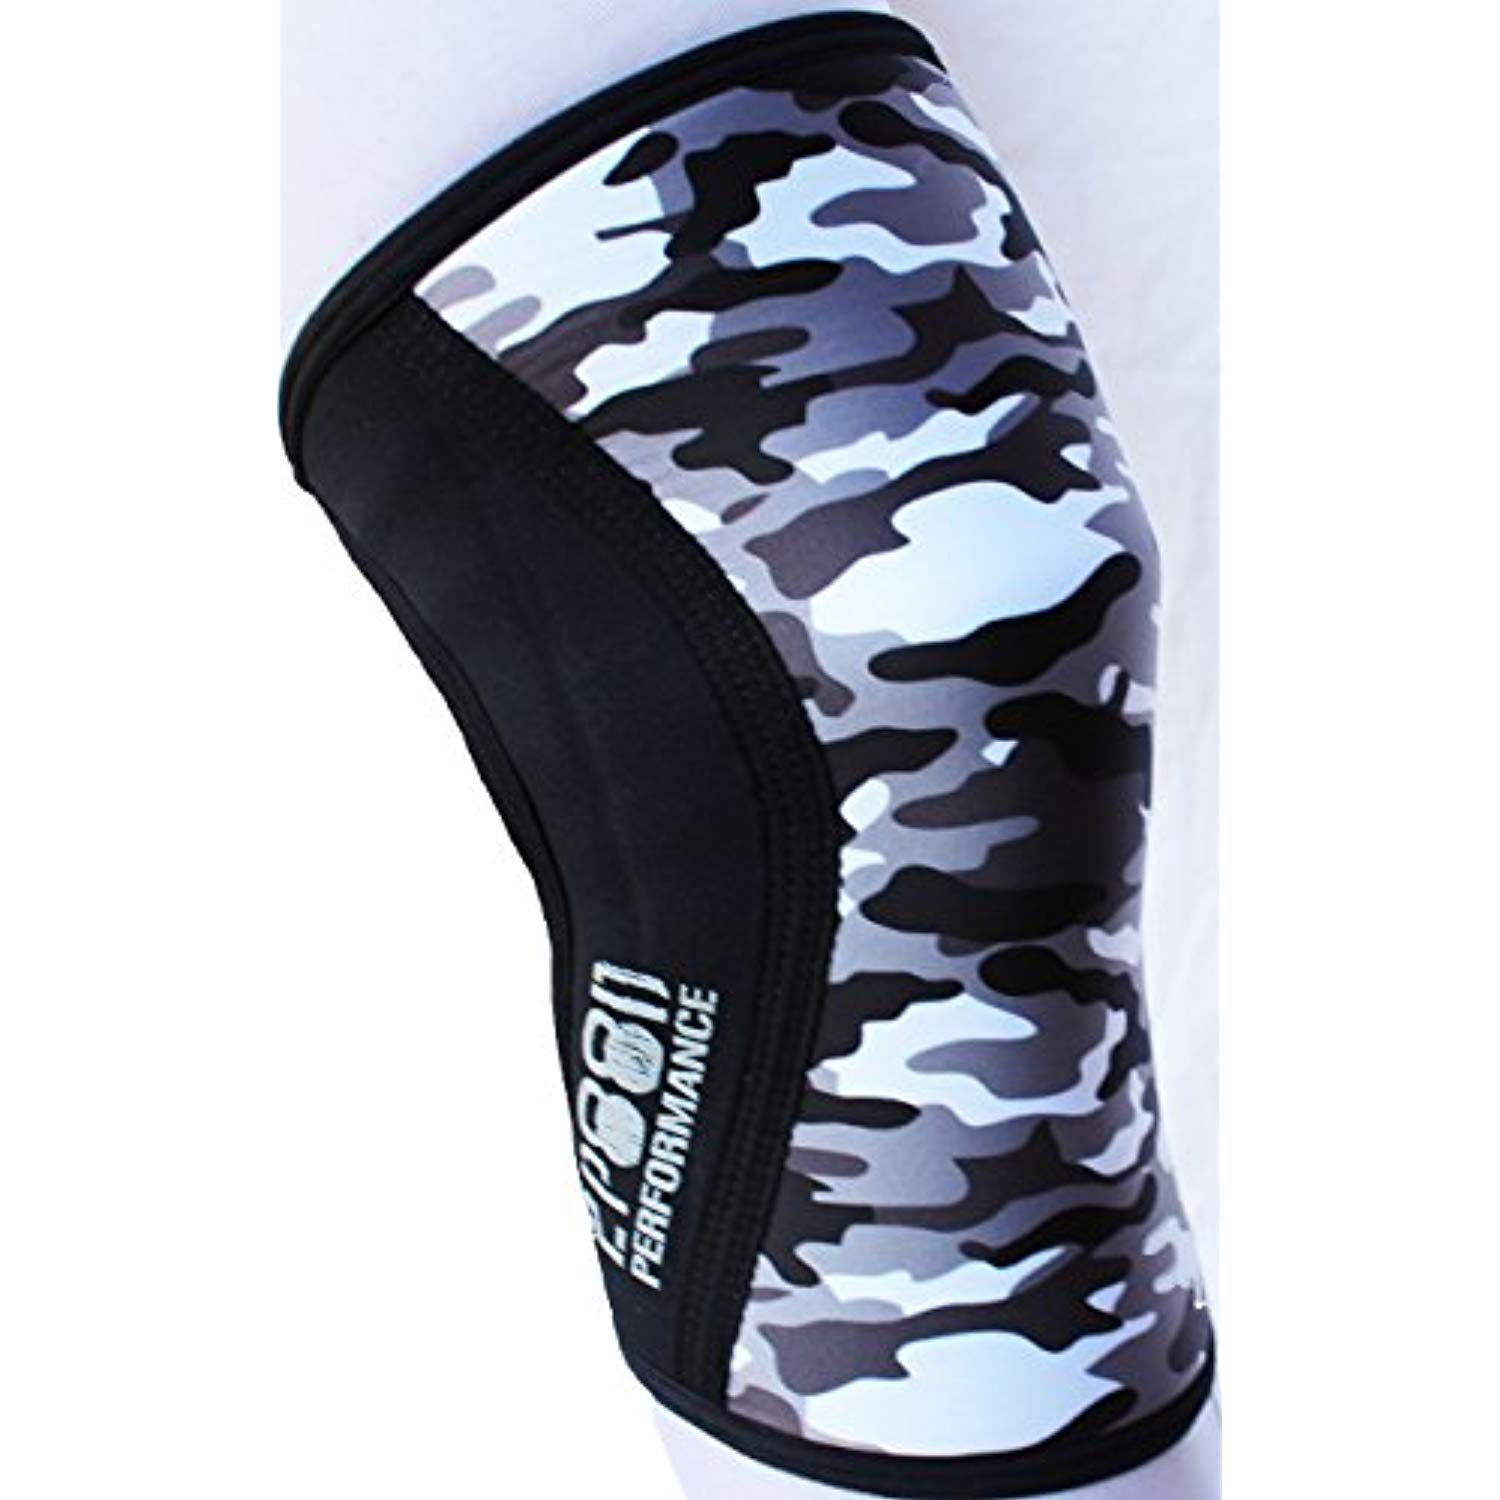 2319ca56fc 2POOD Performance Knee Sleeve (SOLD AS PAIR OF 2) for Fitness, Cross  Training, Squatting, Weightlifting, Wrestling, Compression and more.